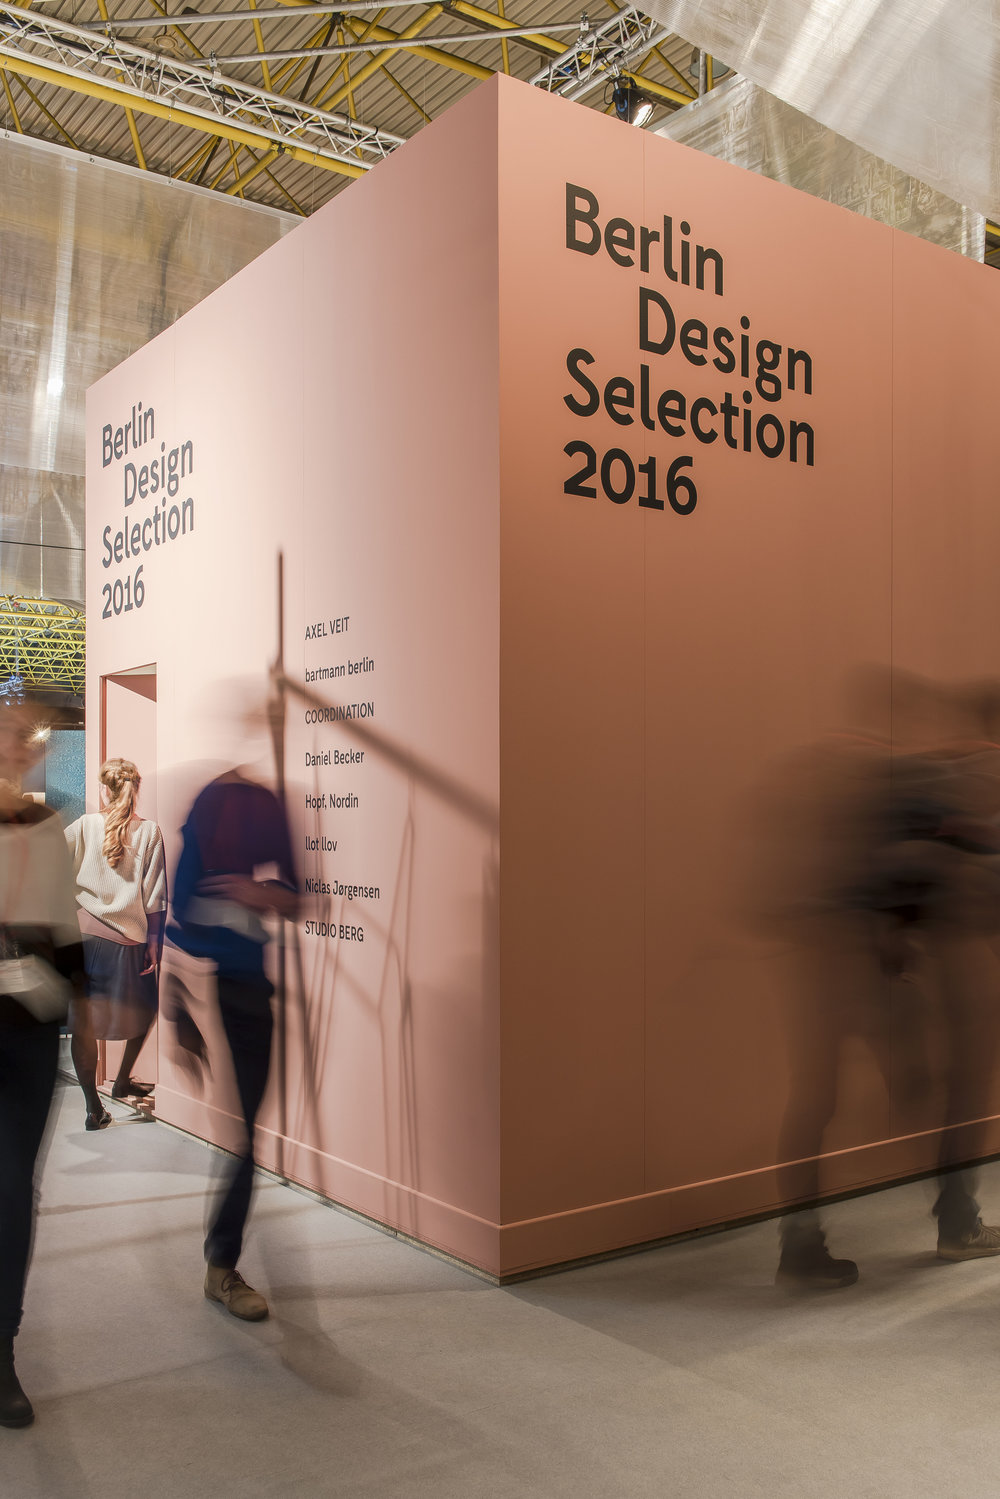 berlin-design-selection-kortrijk_tradefair-exhibition-design_coordination-berlin_01.jpg